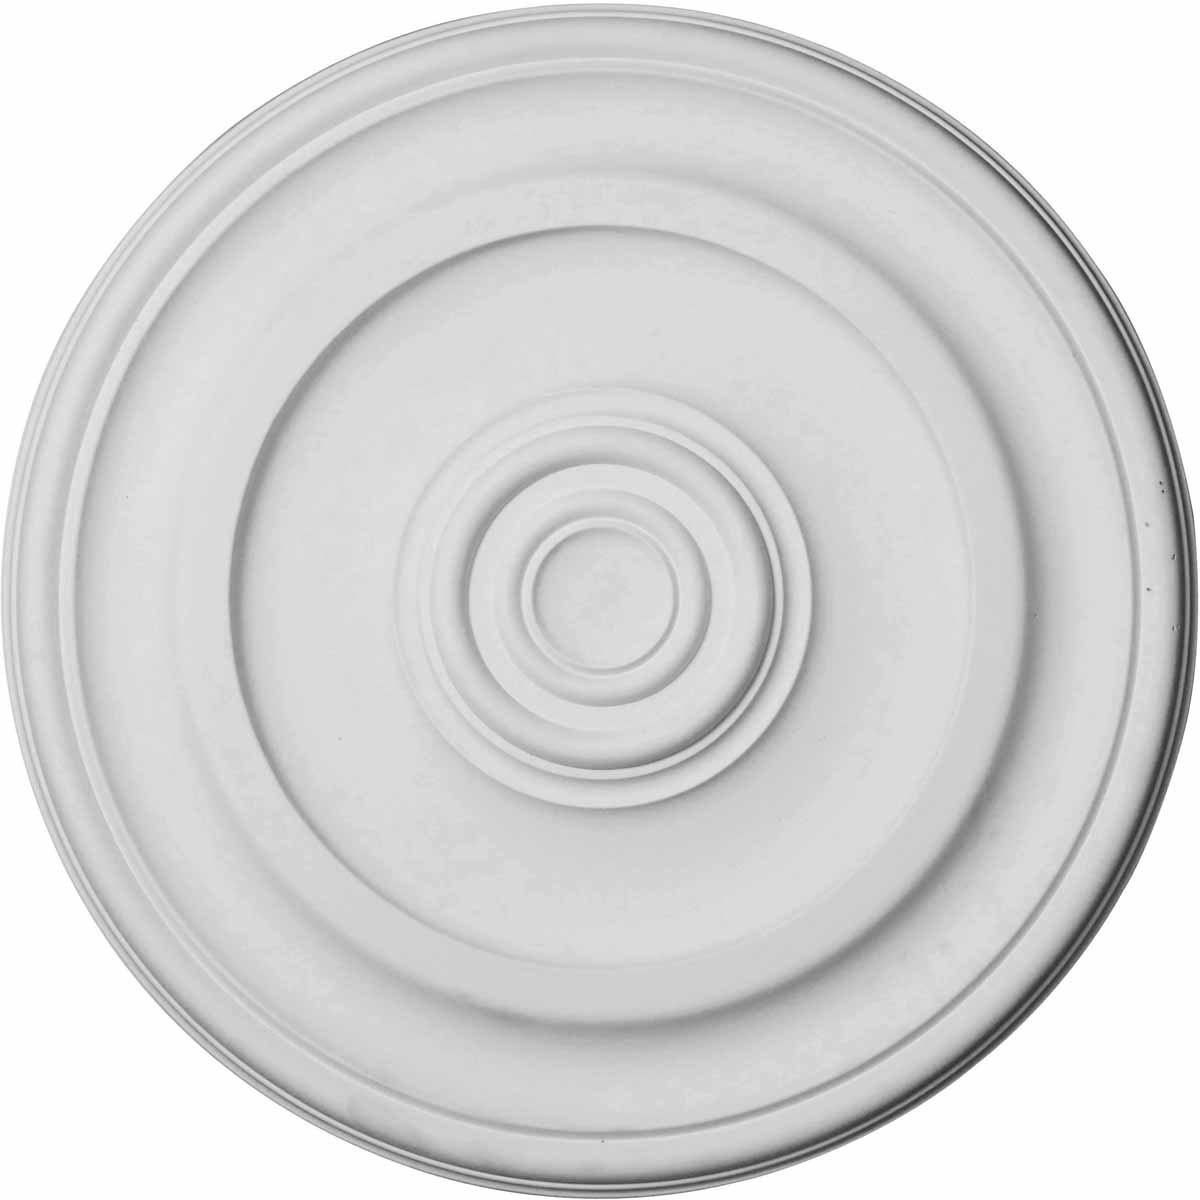 """EM-CM24KP - 23 5/8""""OD x 1 3/4""""P Kepler Traditional Ceiling Medallion (For Canopies up to 5 1/4"""")"""